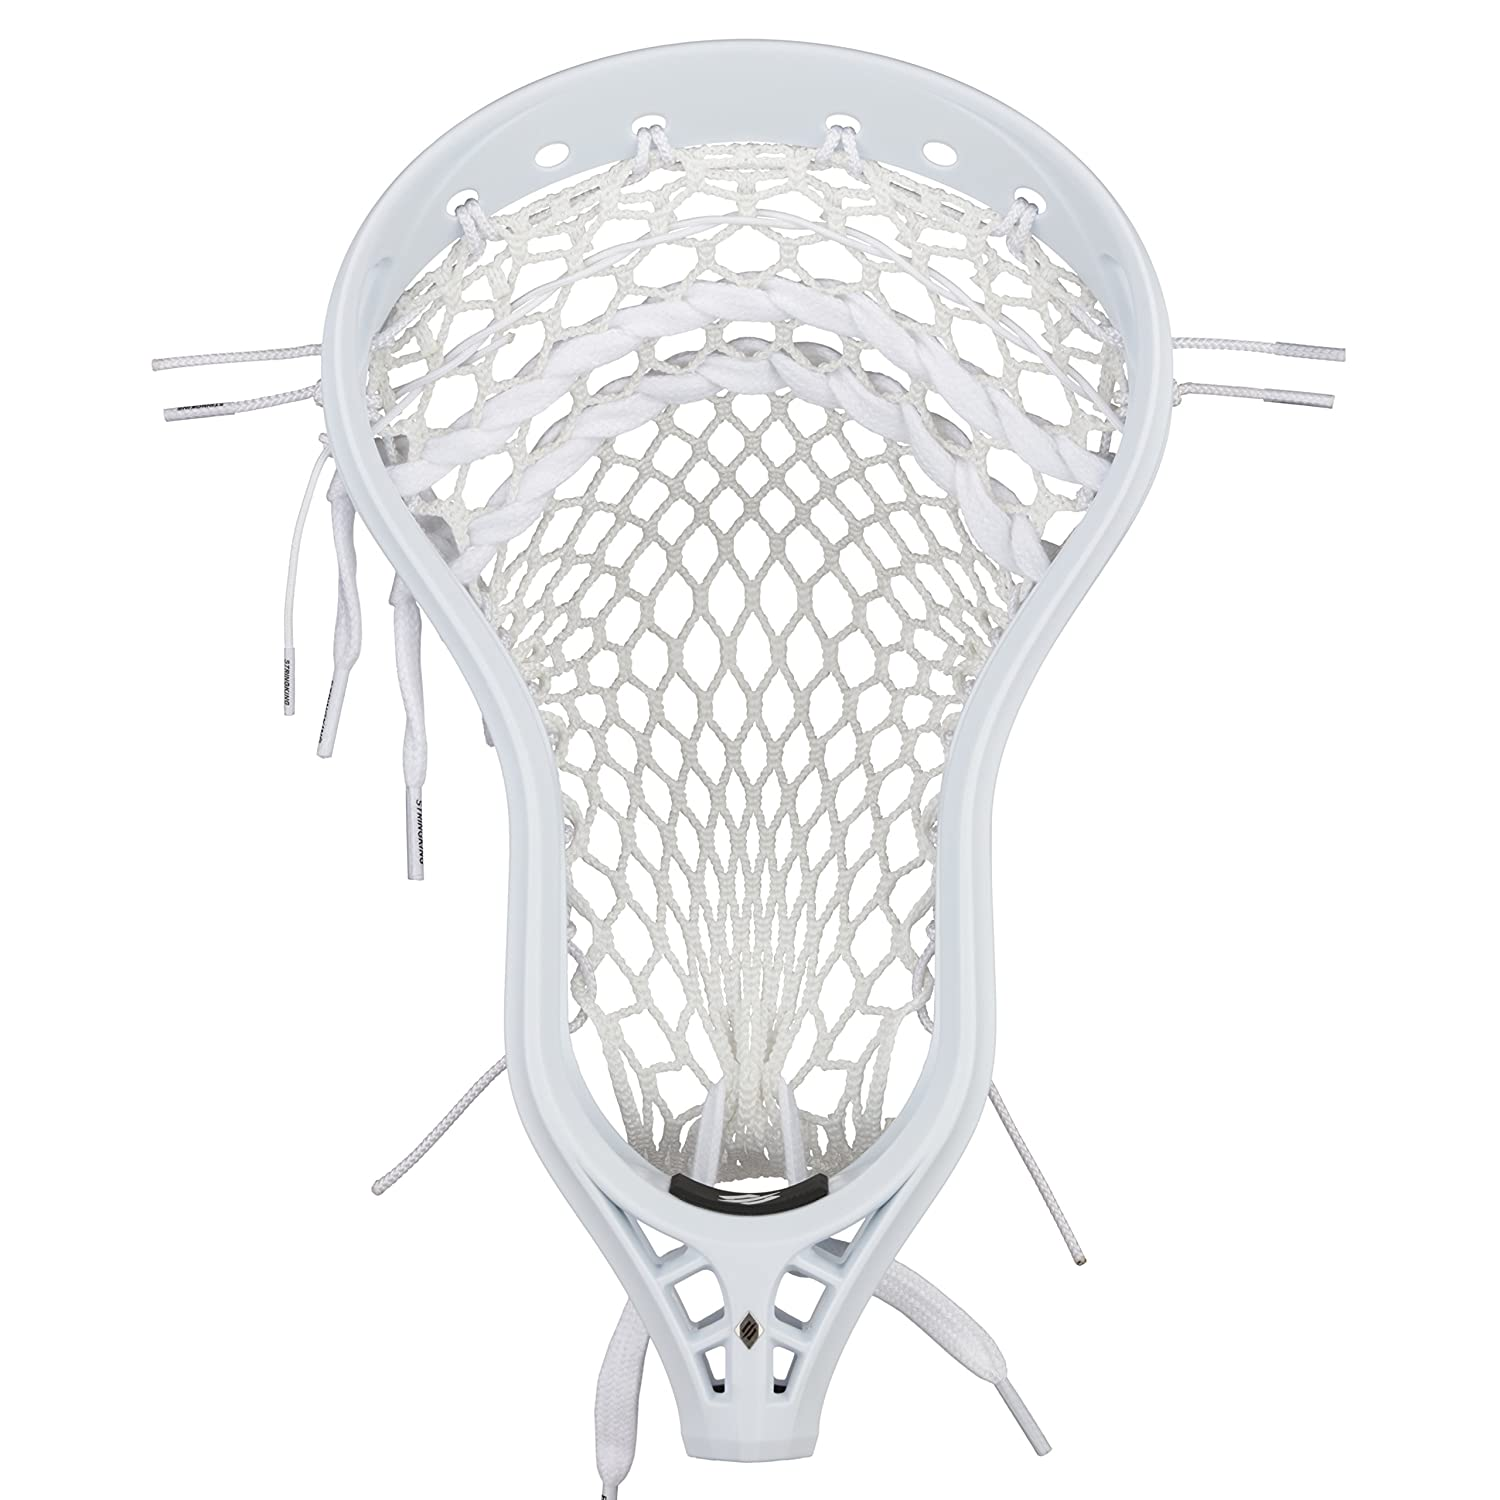 String King Mark 2D Strung with Type 3 Mesh Defense Lacrosse Head (Assorted Colors & Options)